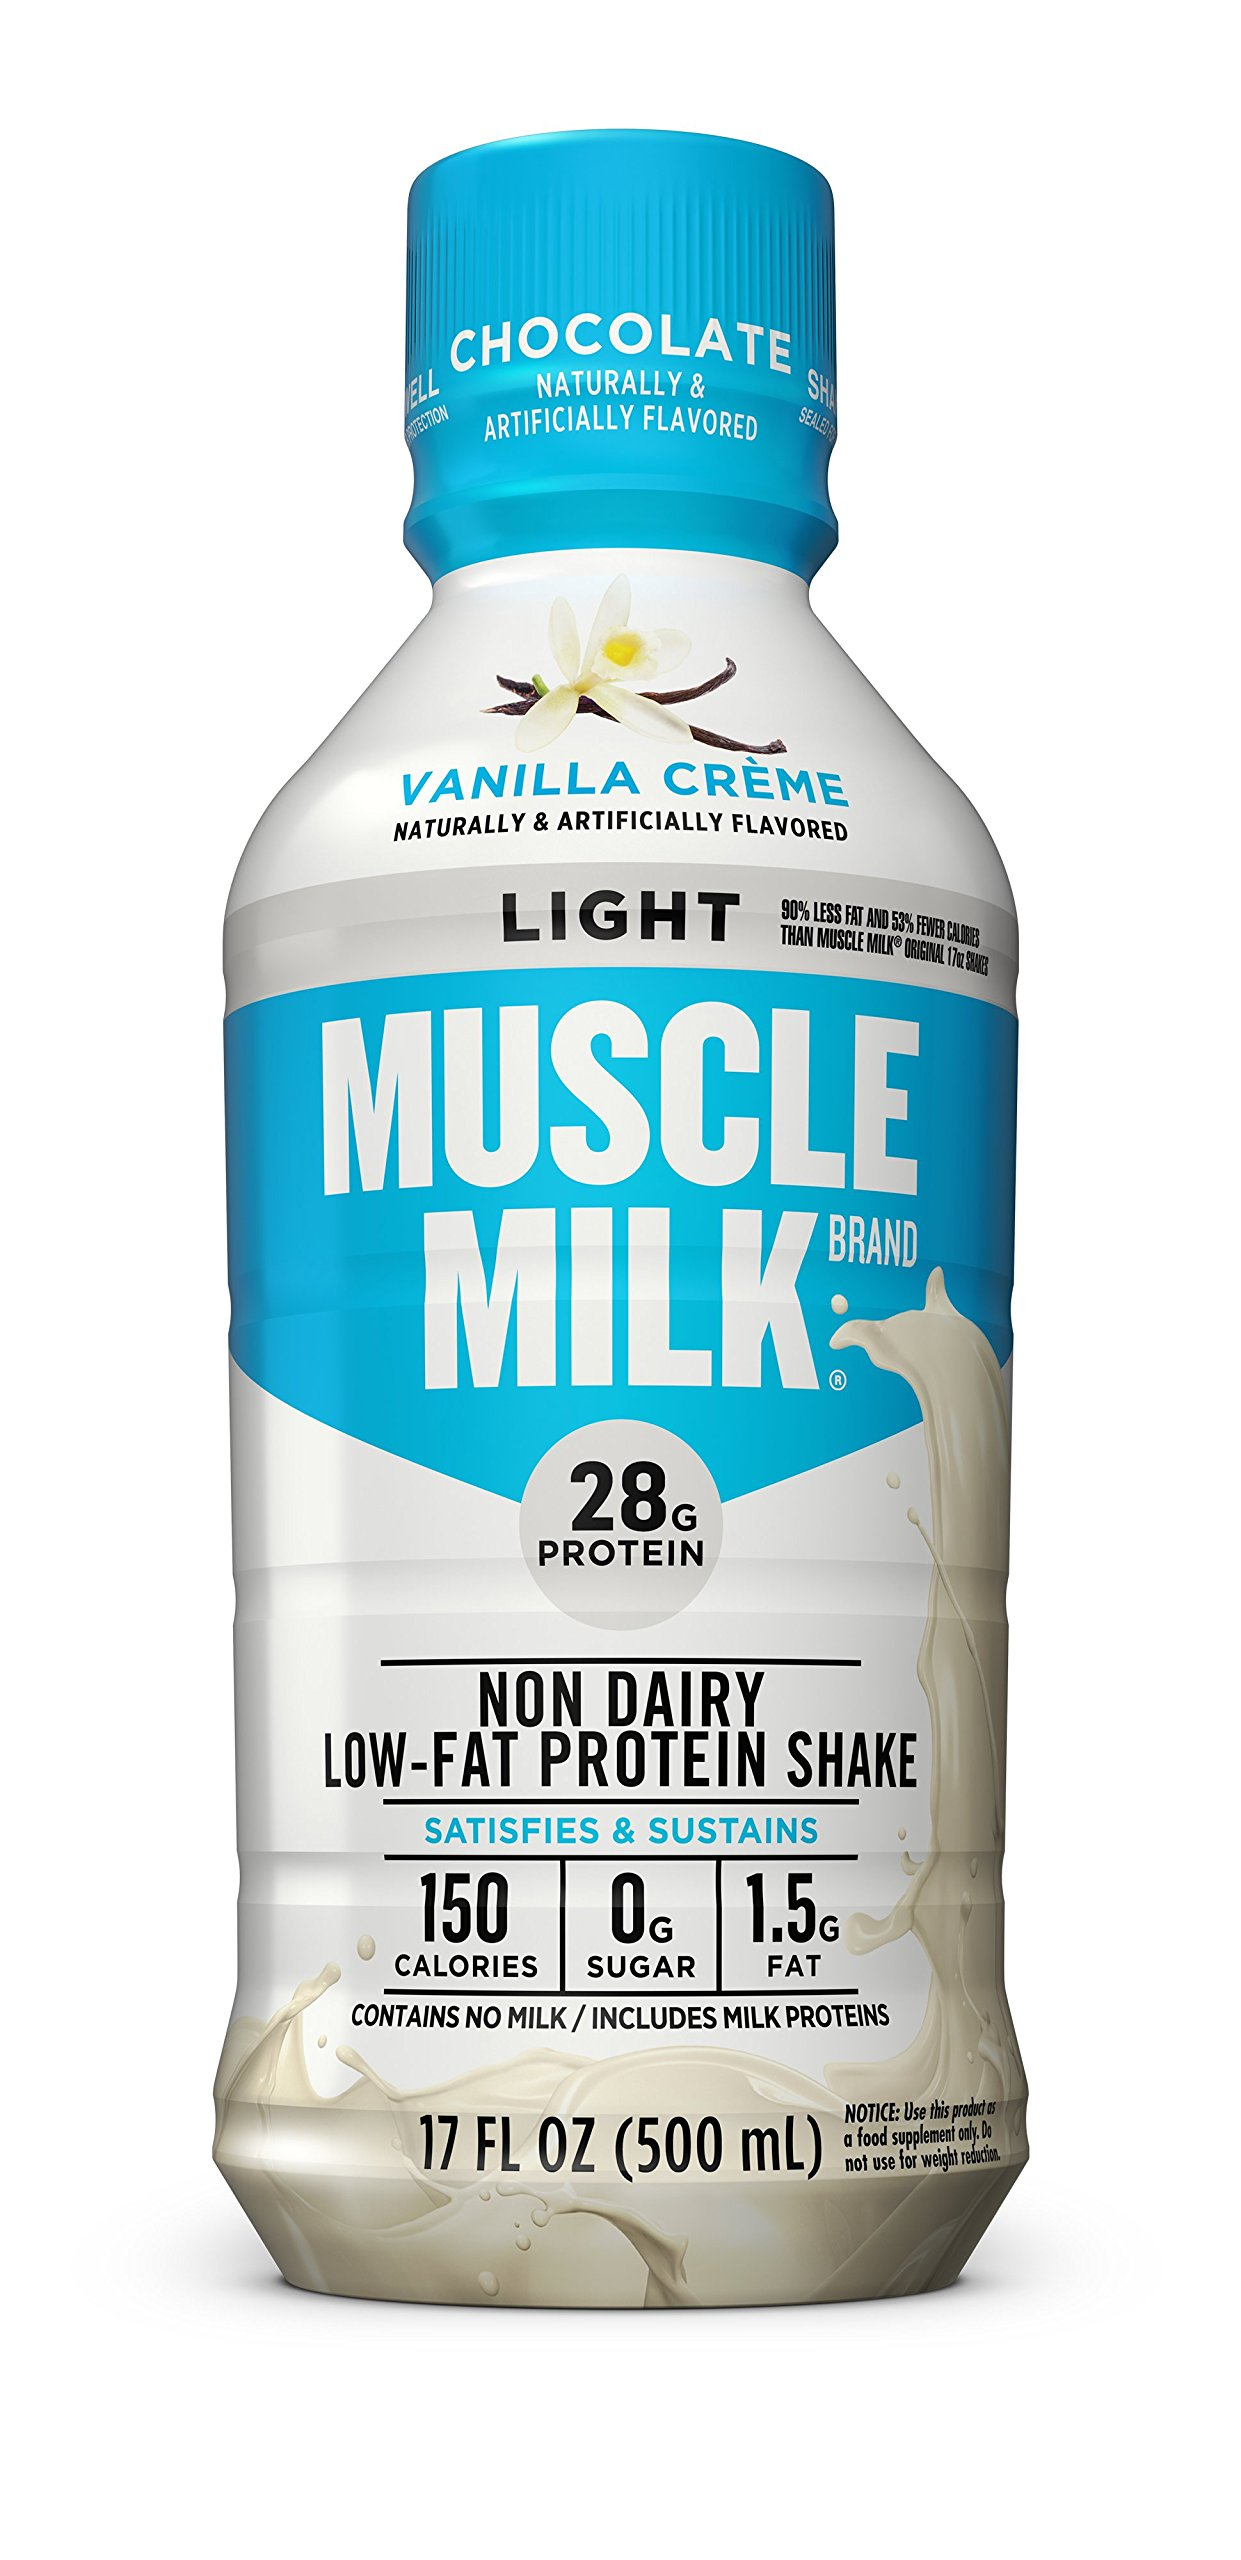 Muscle Milk Muscle Milk Light Protein Shake, Vanilla Creme, 12 Count by CytoSport